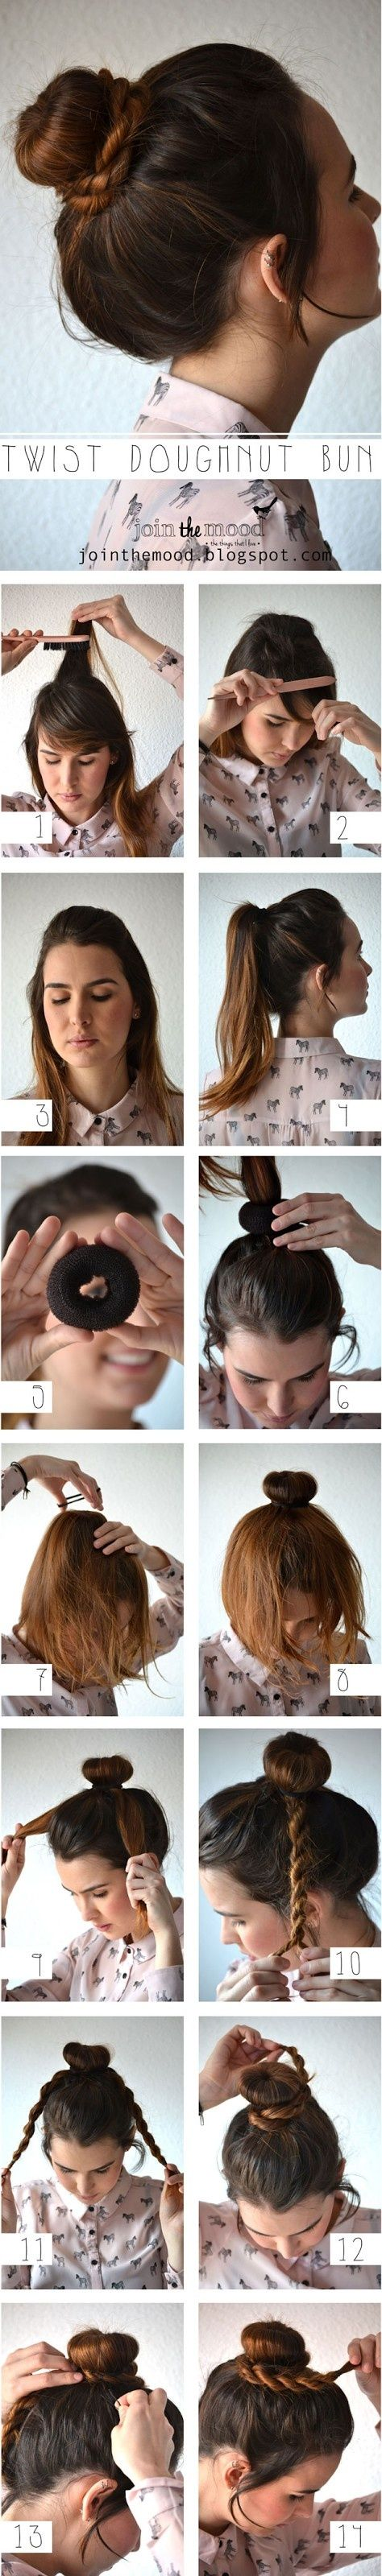 SHORT/THIN HAIR Bun--do as a Low/Side/High bun. Use a sock bun or bun roll that matches Ur hair. The ends can be braided as shown or loosely wrapped around the bun /or pinned around into the center to hide the donut look. Or leave the ends down curl them, or if Ur hair is naturally curly just wet them down scrunch. Very cute